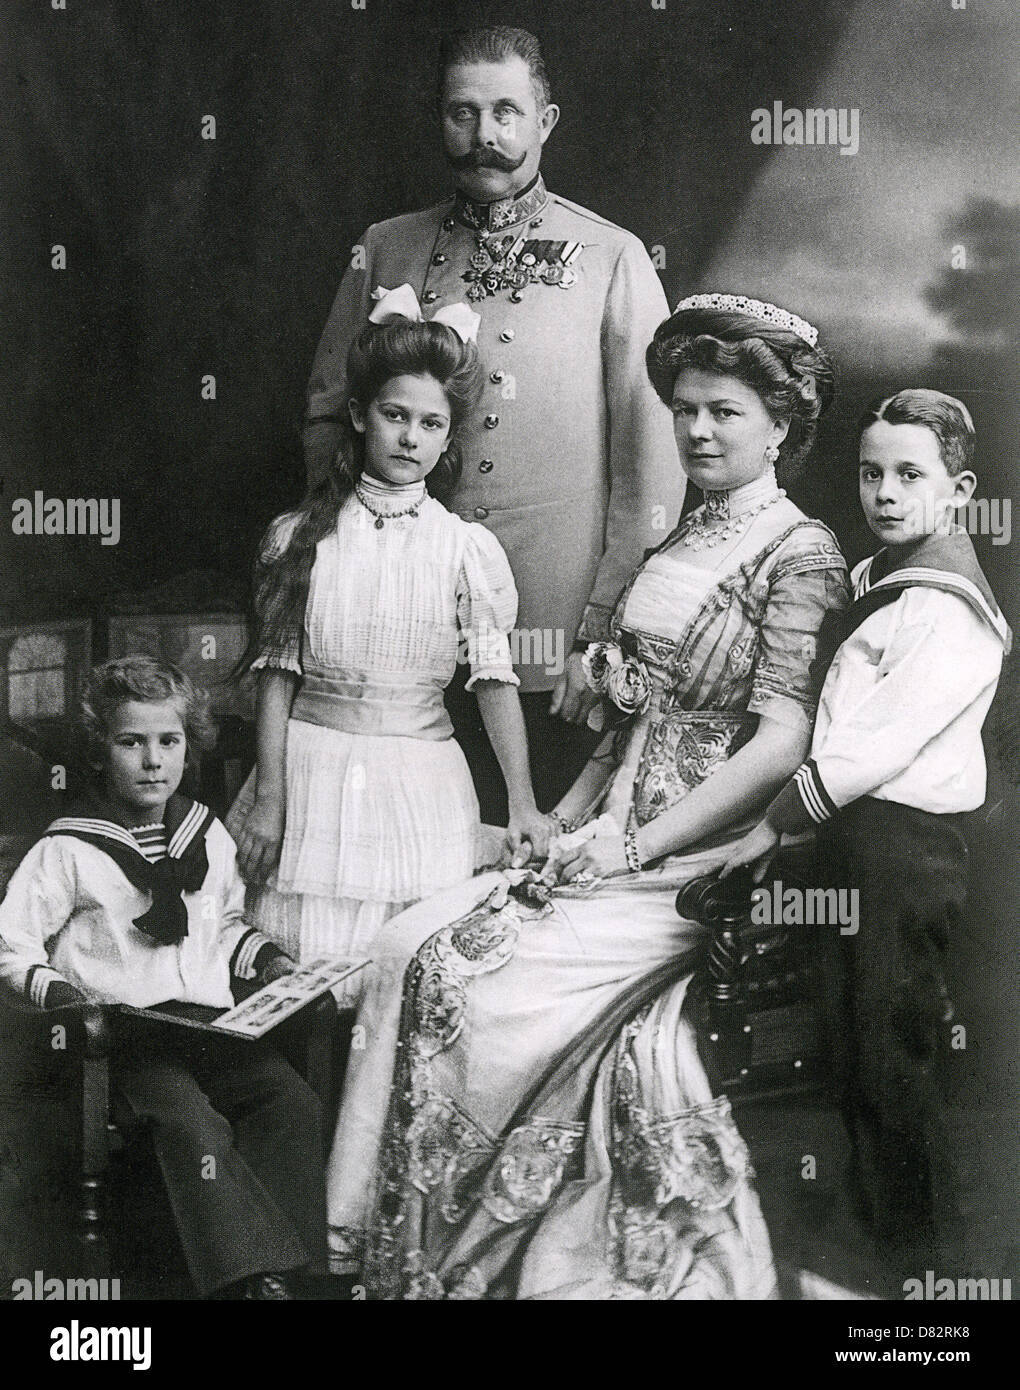 EMPEROR FRANZ FERDINAND OF AUSTRIA-HUNGARY with his wife Sophie and their children with Crown Prince Rudolf at right - Stock Image